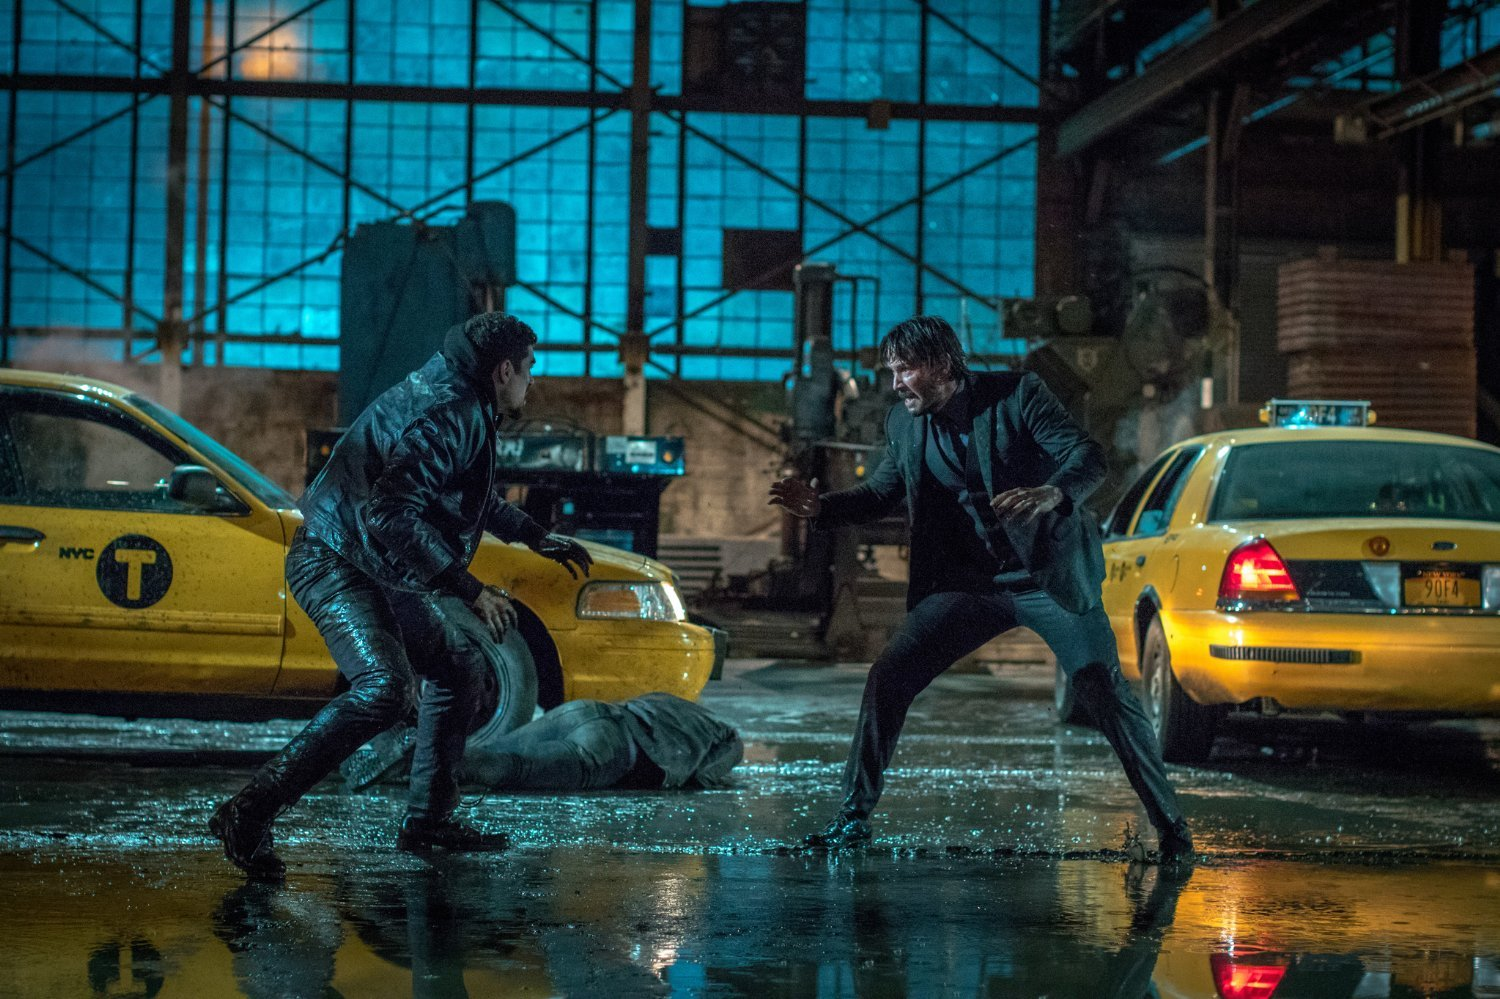 Keanu Reeves And Chad Stahelski Weigh In On The Possibilities Of John Wick: Chapter 3